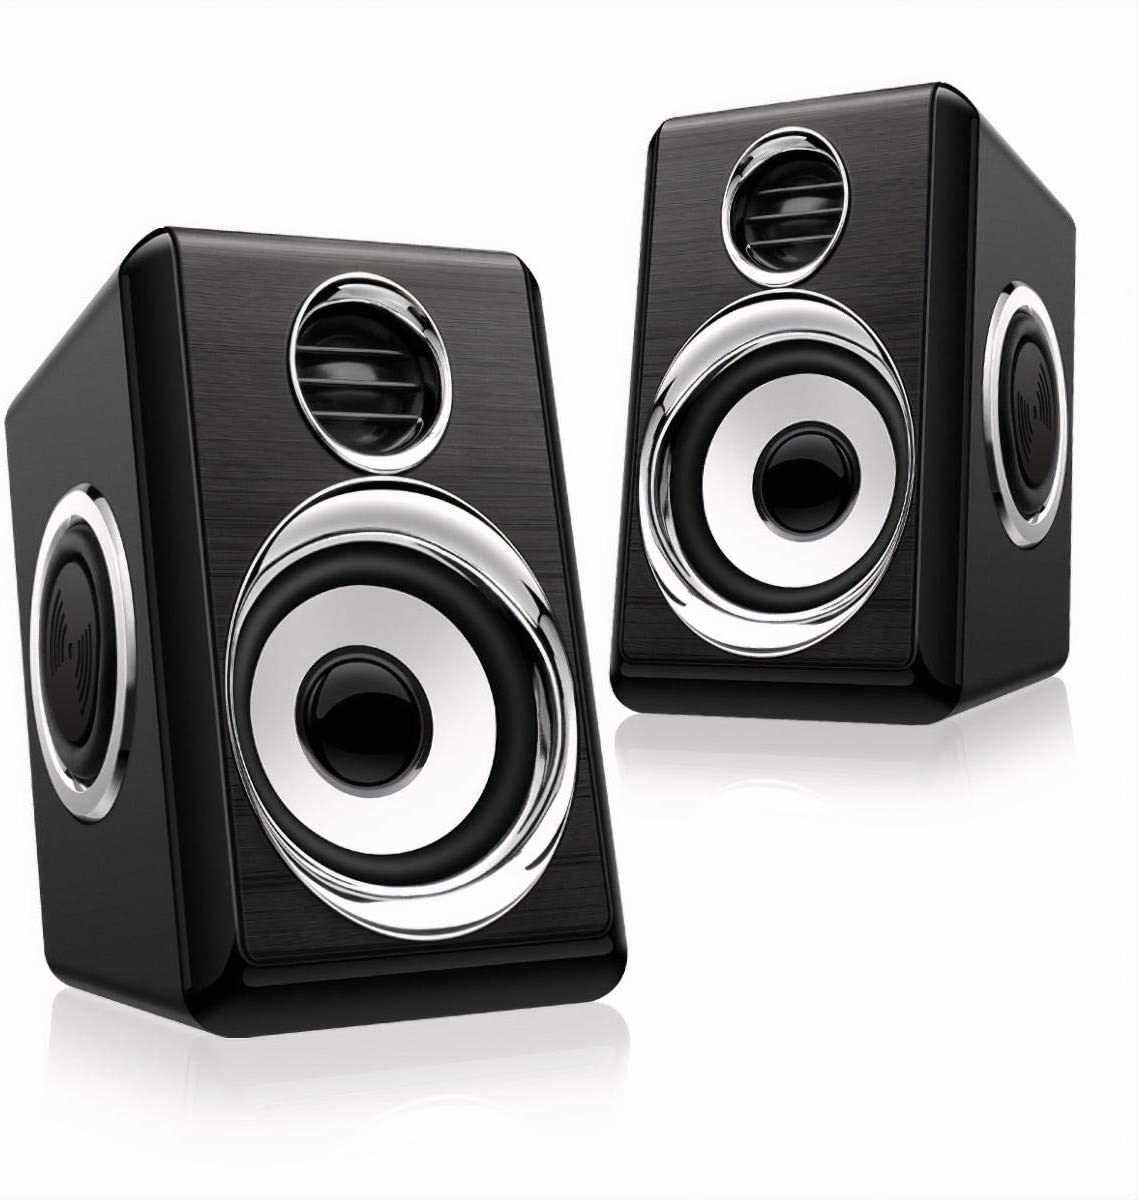 Computer Speakers 8W PC Powered Speakers USB Speaker with Stereo Sound Wired Monitor Speakers for Desktop/Computer/PC/TV/Laptop/Cellphone/Gaming